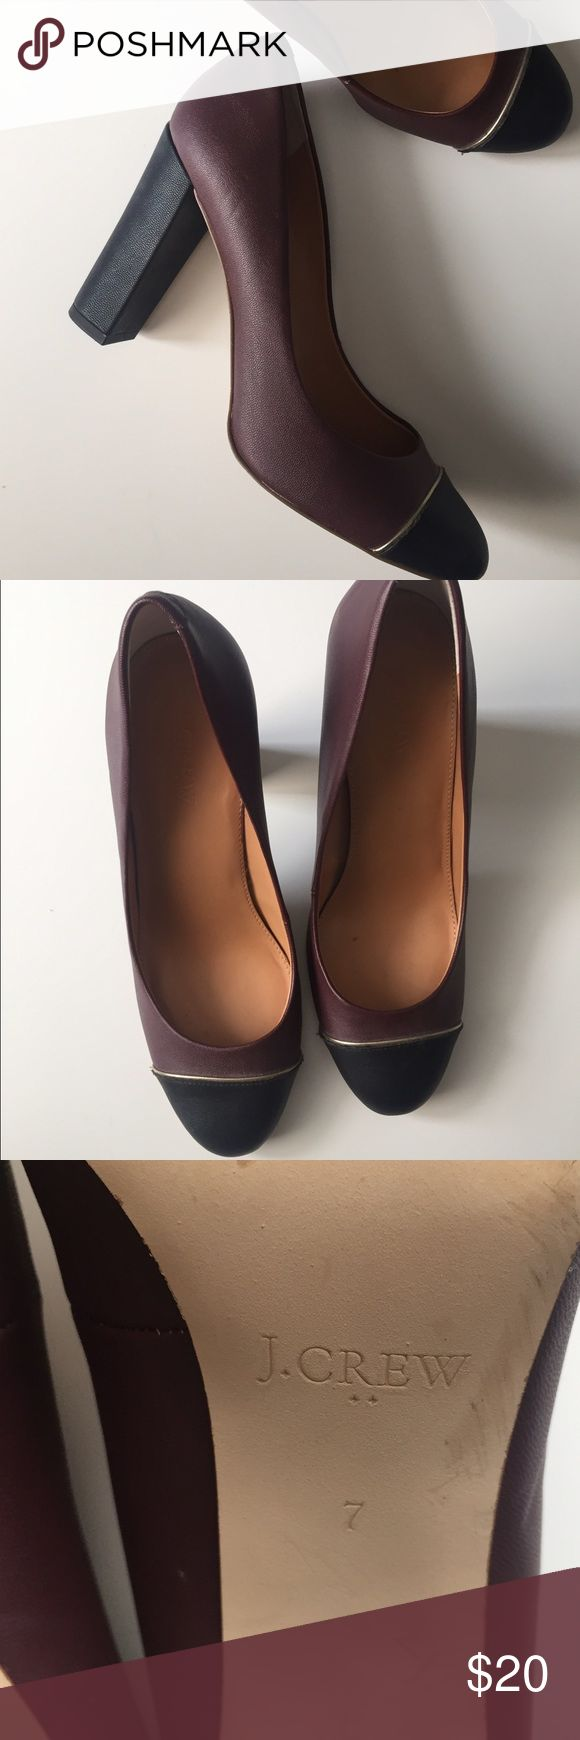 J Crew Pumps • Size 7 Purple with navy cap toe and heel, gold trim on toes. Worn >5 times J Crew Shoes Heels